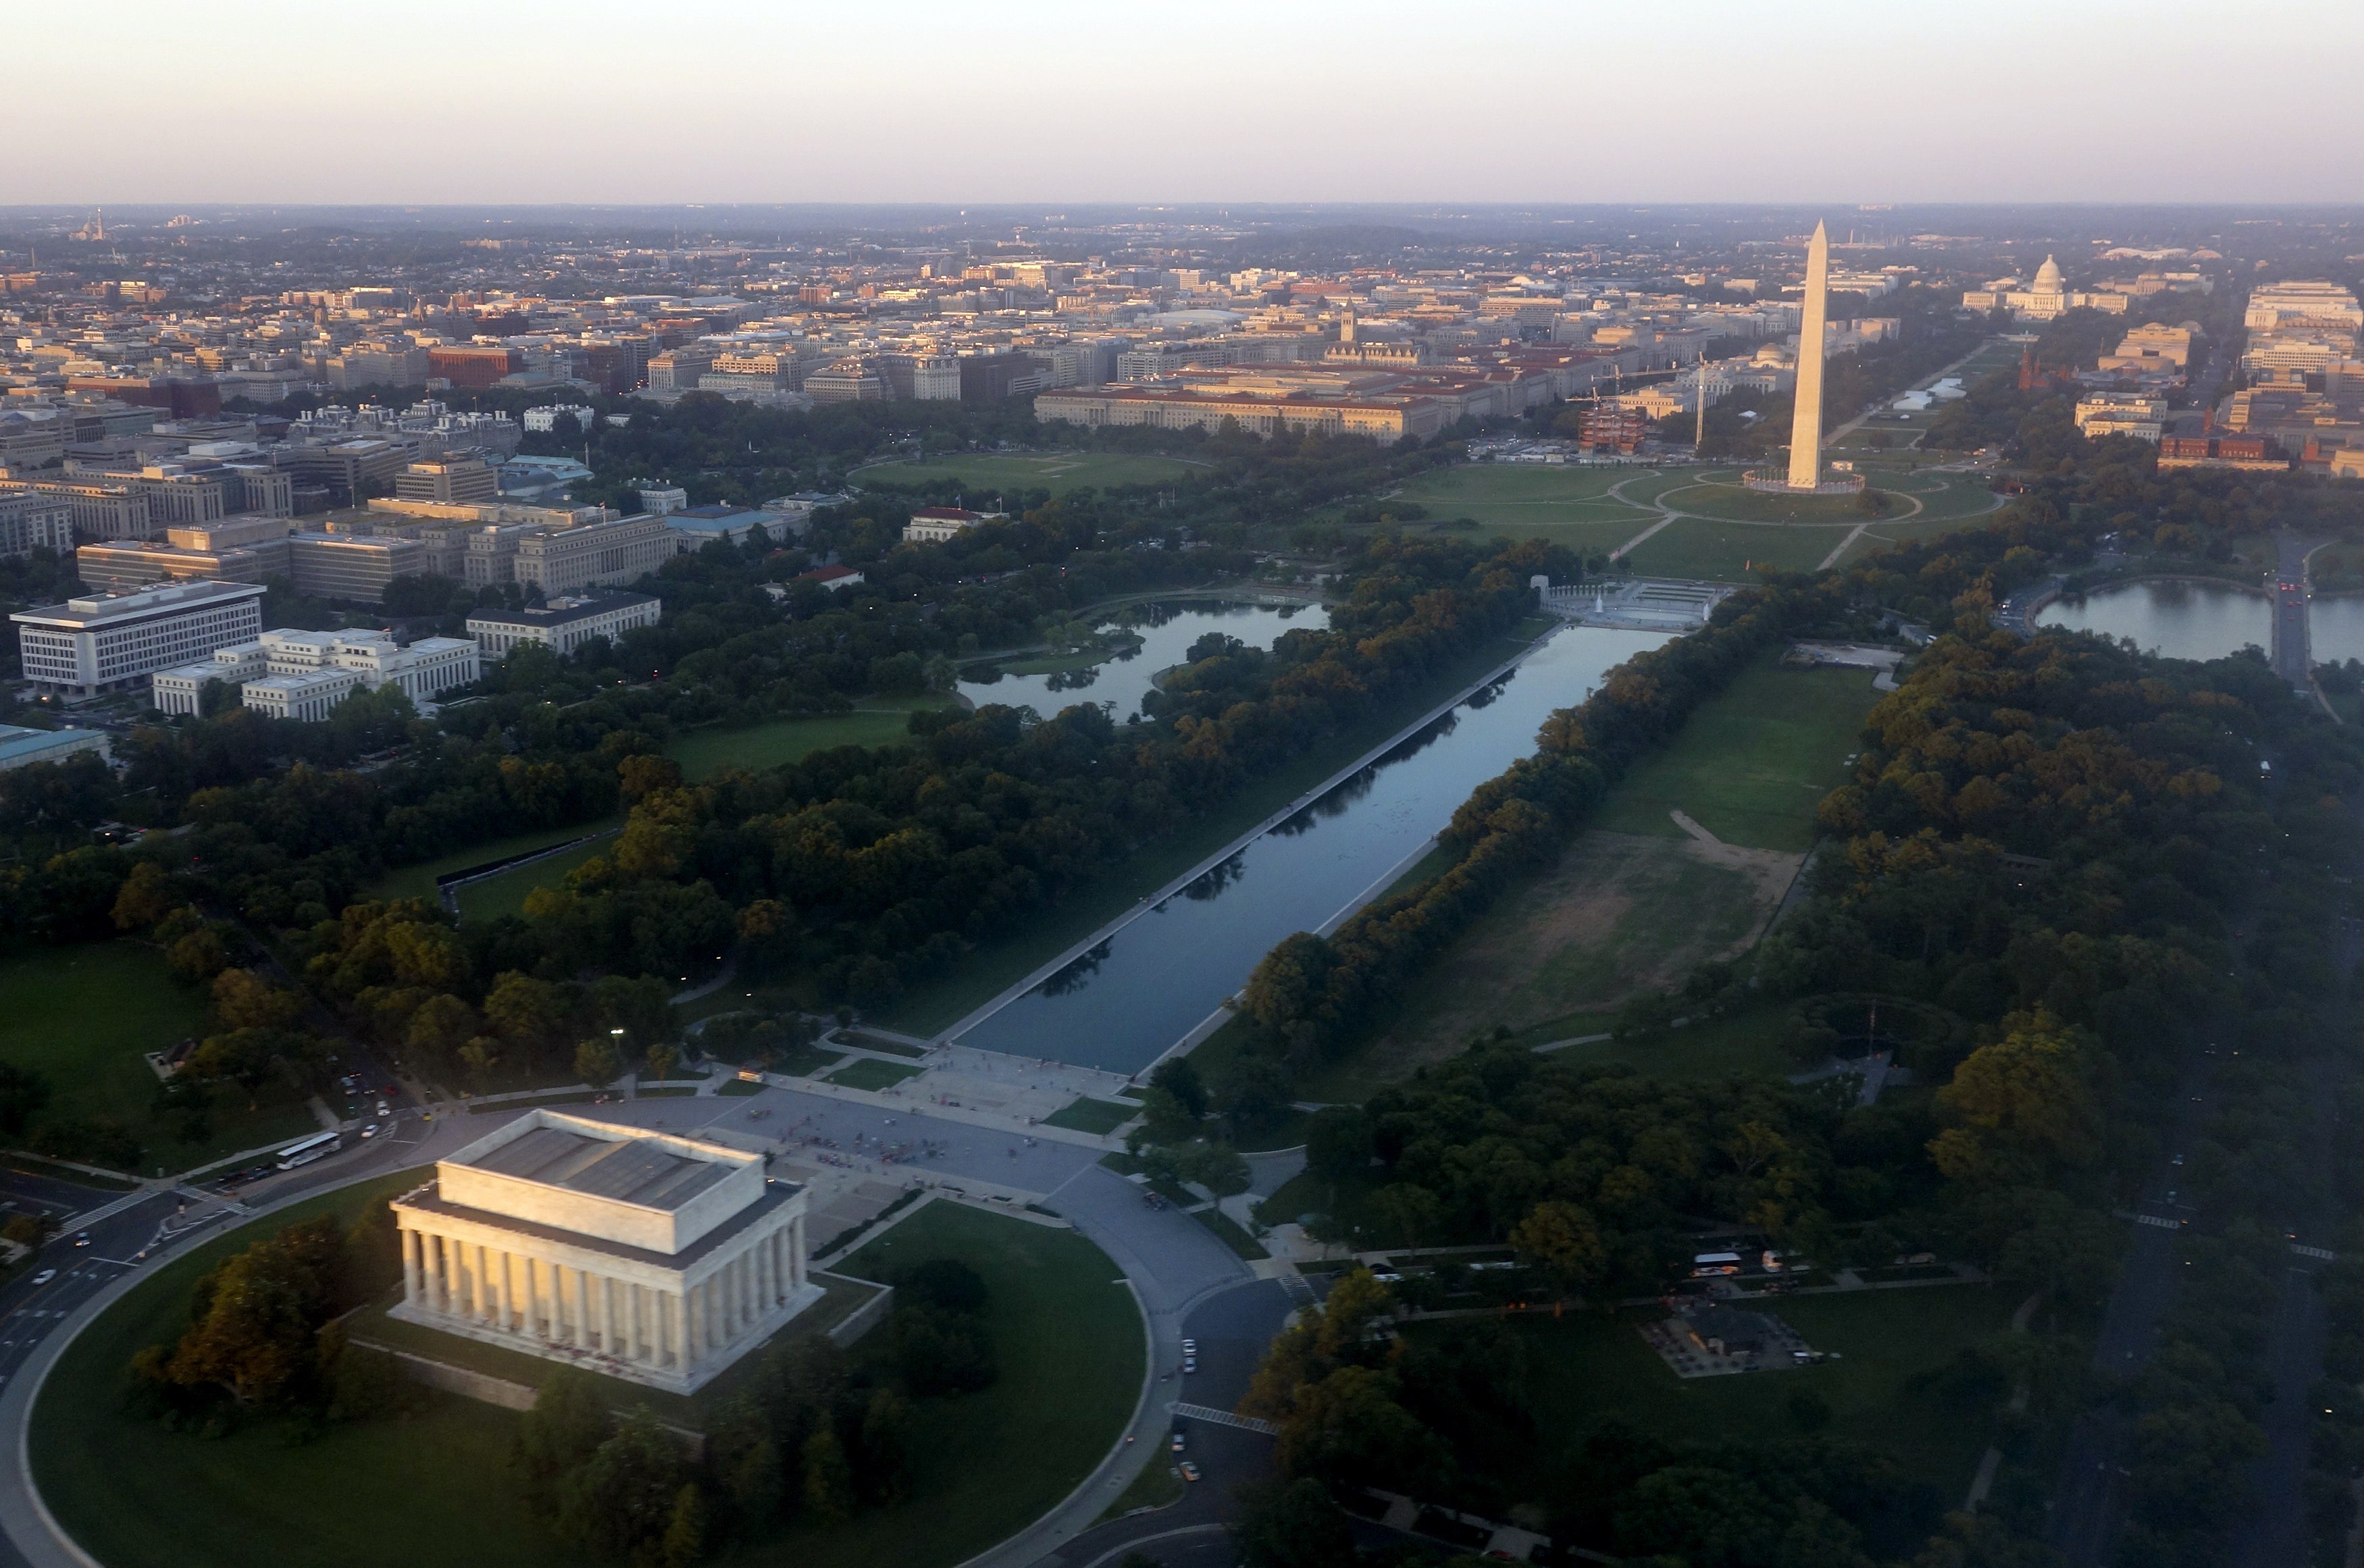 The skyline of Washington, DC, including the Lincoln Memorial, Washington Monument, US Capitol and National Mall, is seen from the air at sunset in this photograph taken on June 15, 2014.